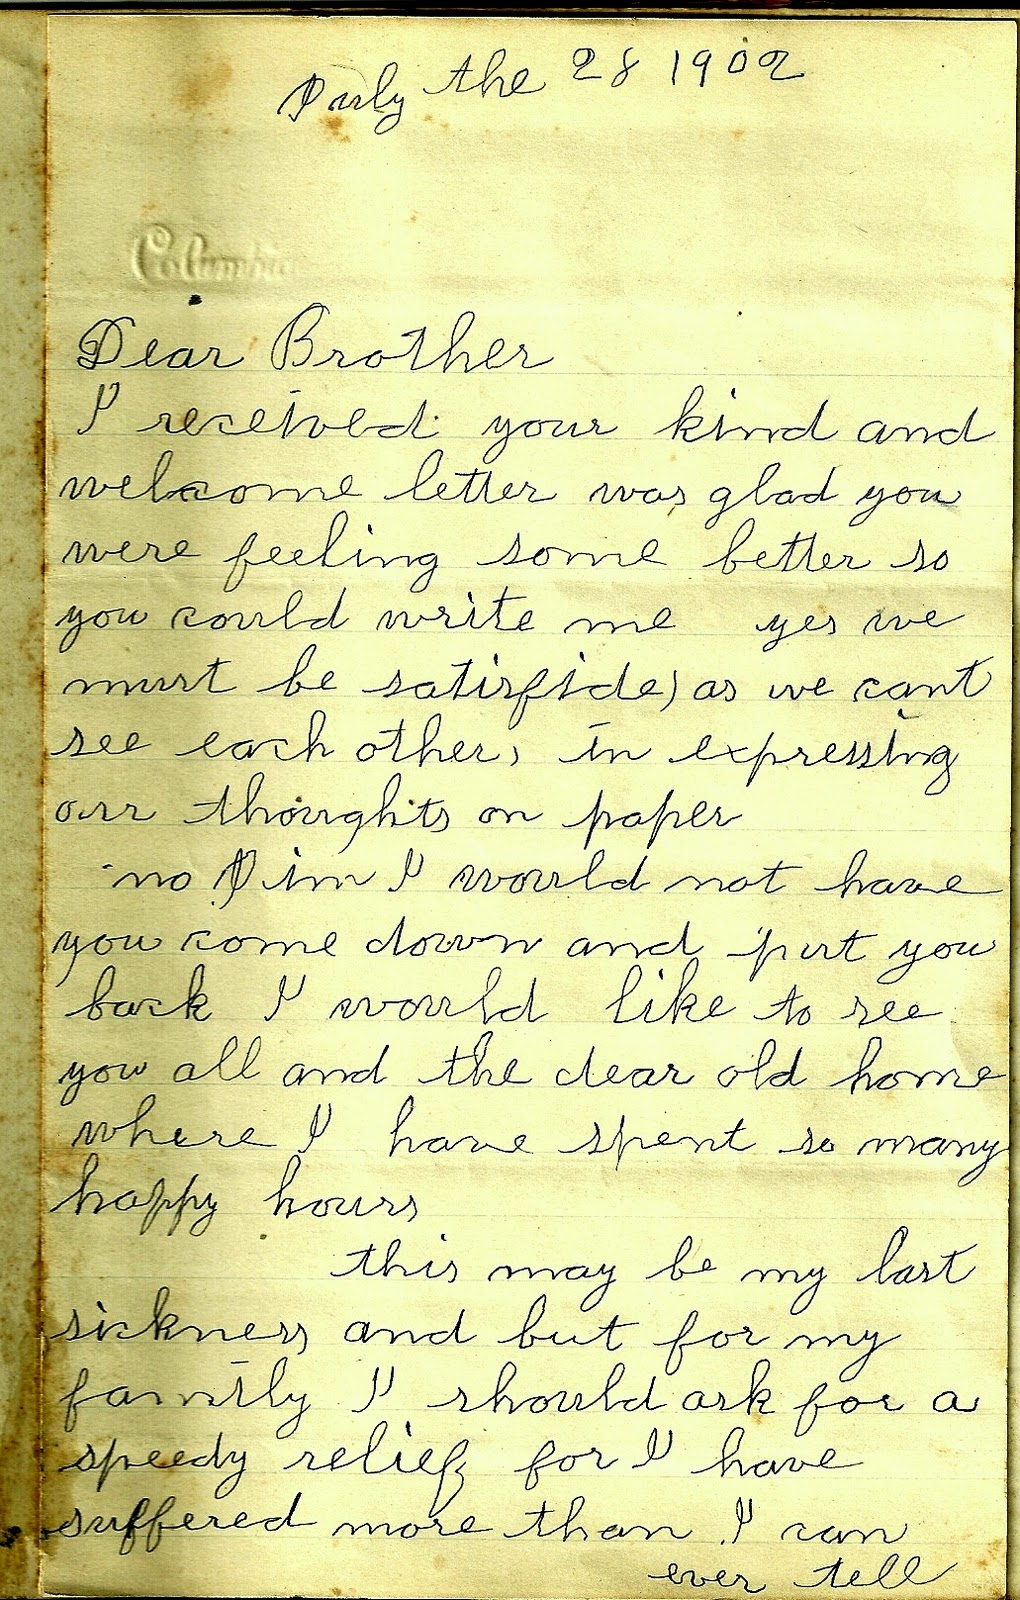 Heirlooms Reunited 1902 Goodbye Letter from Ill Rose Frazier to – Goodbye Letter